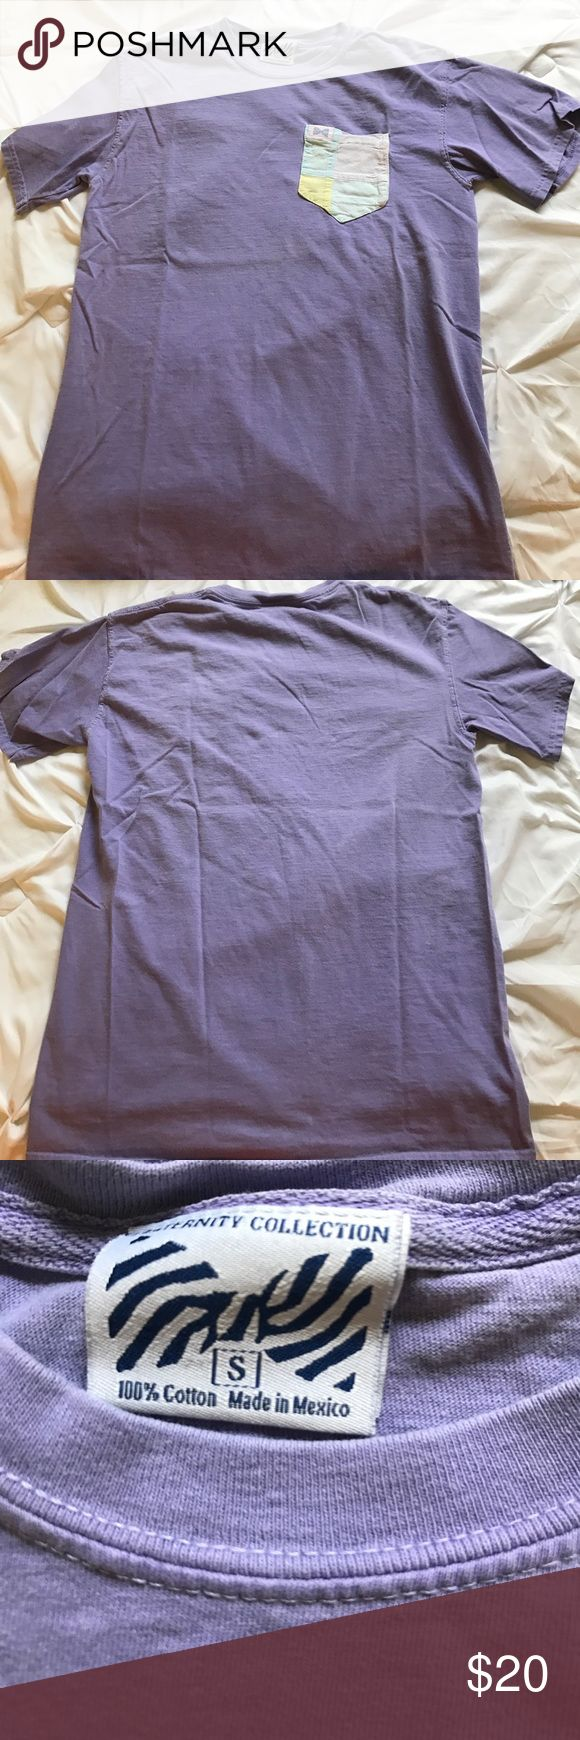 Fraternity Collection Tshirt Light purple small Fraternity Collection Tshirt! Such nice material, feels like comfort colors but it doesn't say it is on the shirt. Has been worn a few times but am selling because it's too small! Wrinkled in the pictures but there are no flaws with the shirt! Fraternity Collection Tops Tees - Short Sleeve